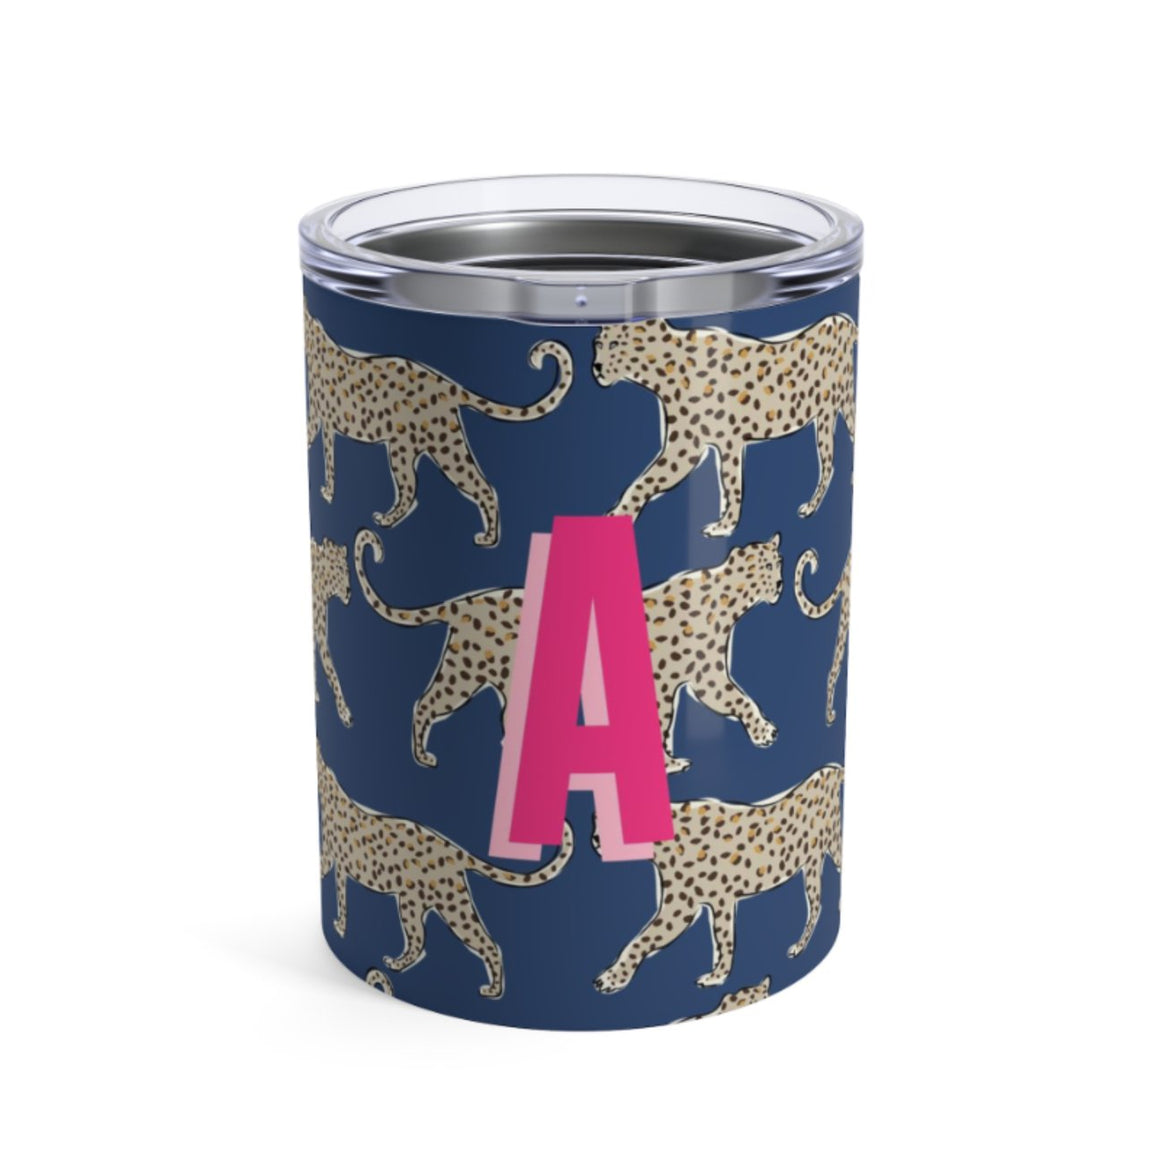 Small Leopard Navy Tumbler - The Preppy Bunny